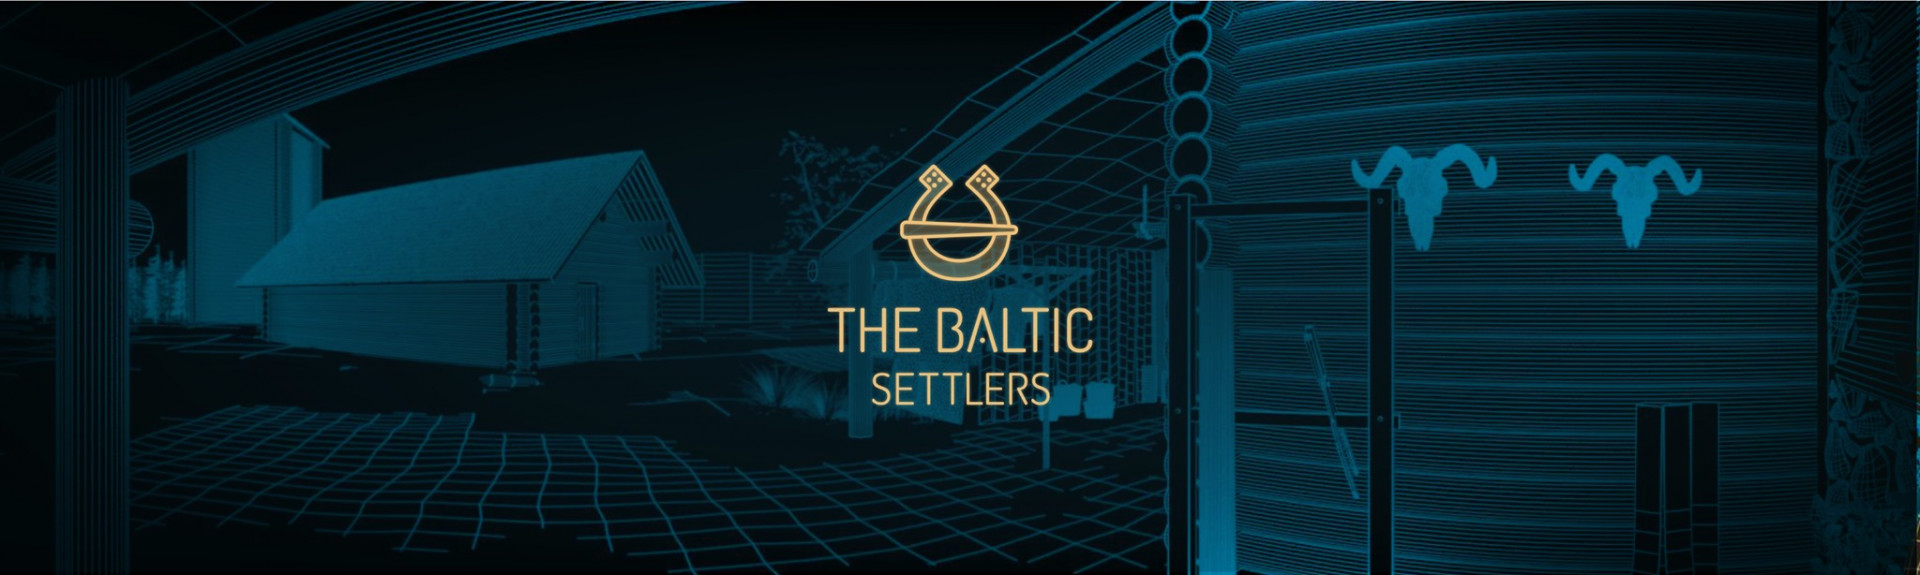 The Baltic Settlers